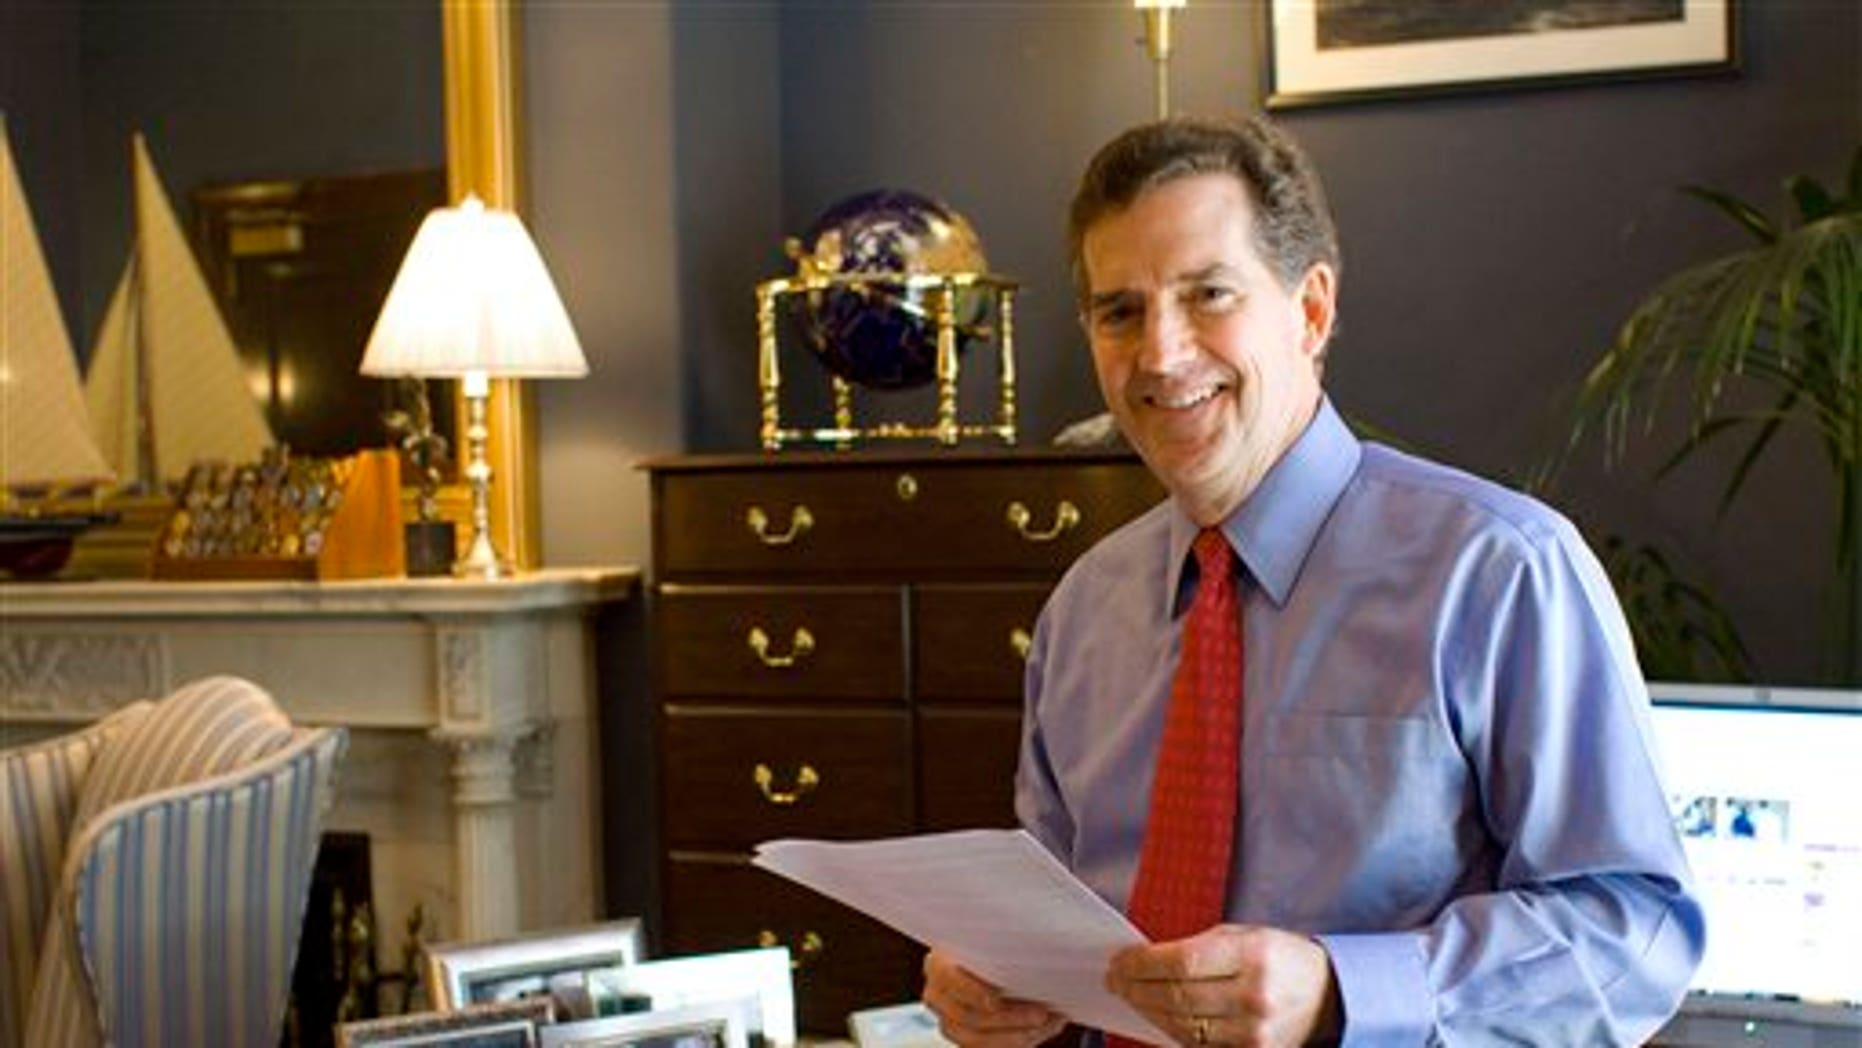 Sen. Jim DeMint, R-S.C., stands in his office on Capitol Hill in Washington, Tuesday, May 4, 2010. DeMint is becoming something of a tea party hero, even a potential conservative kingmaker, a status that is not making the freshman senator many friends among fellow Republicans in Congress.(AP Photo/Harry Hamburg)